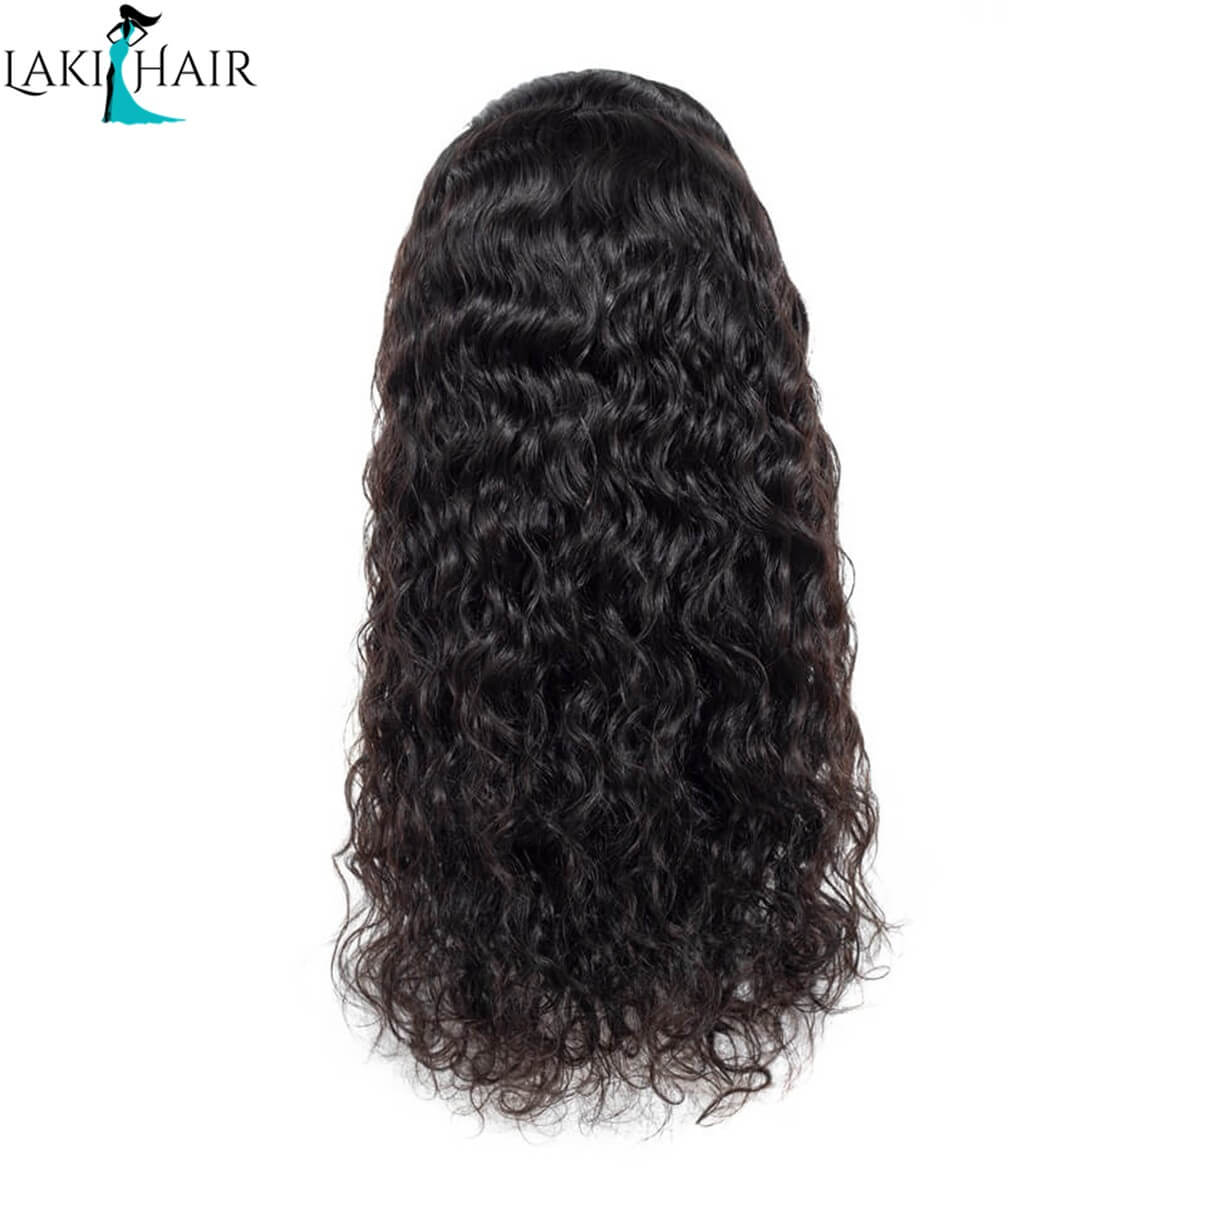 Lakihair Virgin Human Hair Wigs Water Wave Lace Front Wigs Unprocessed Human Hair